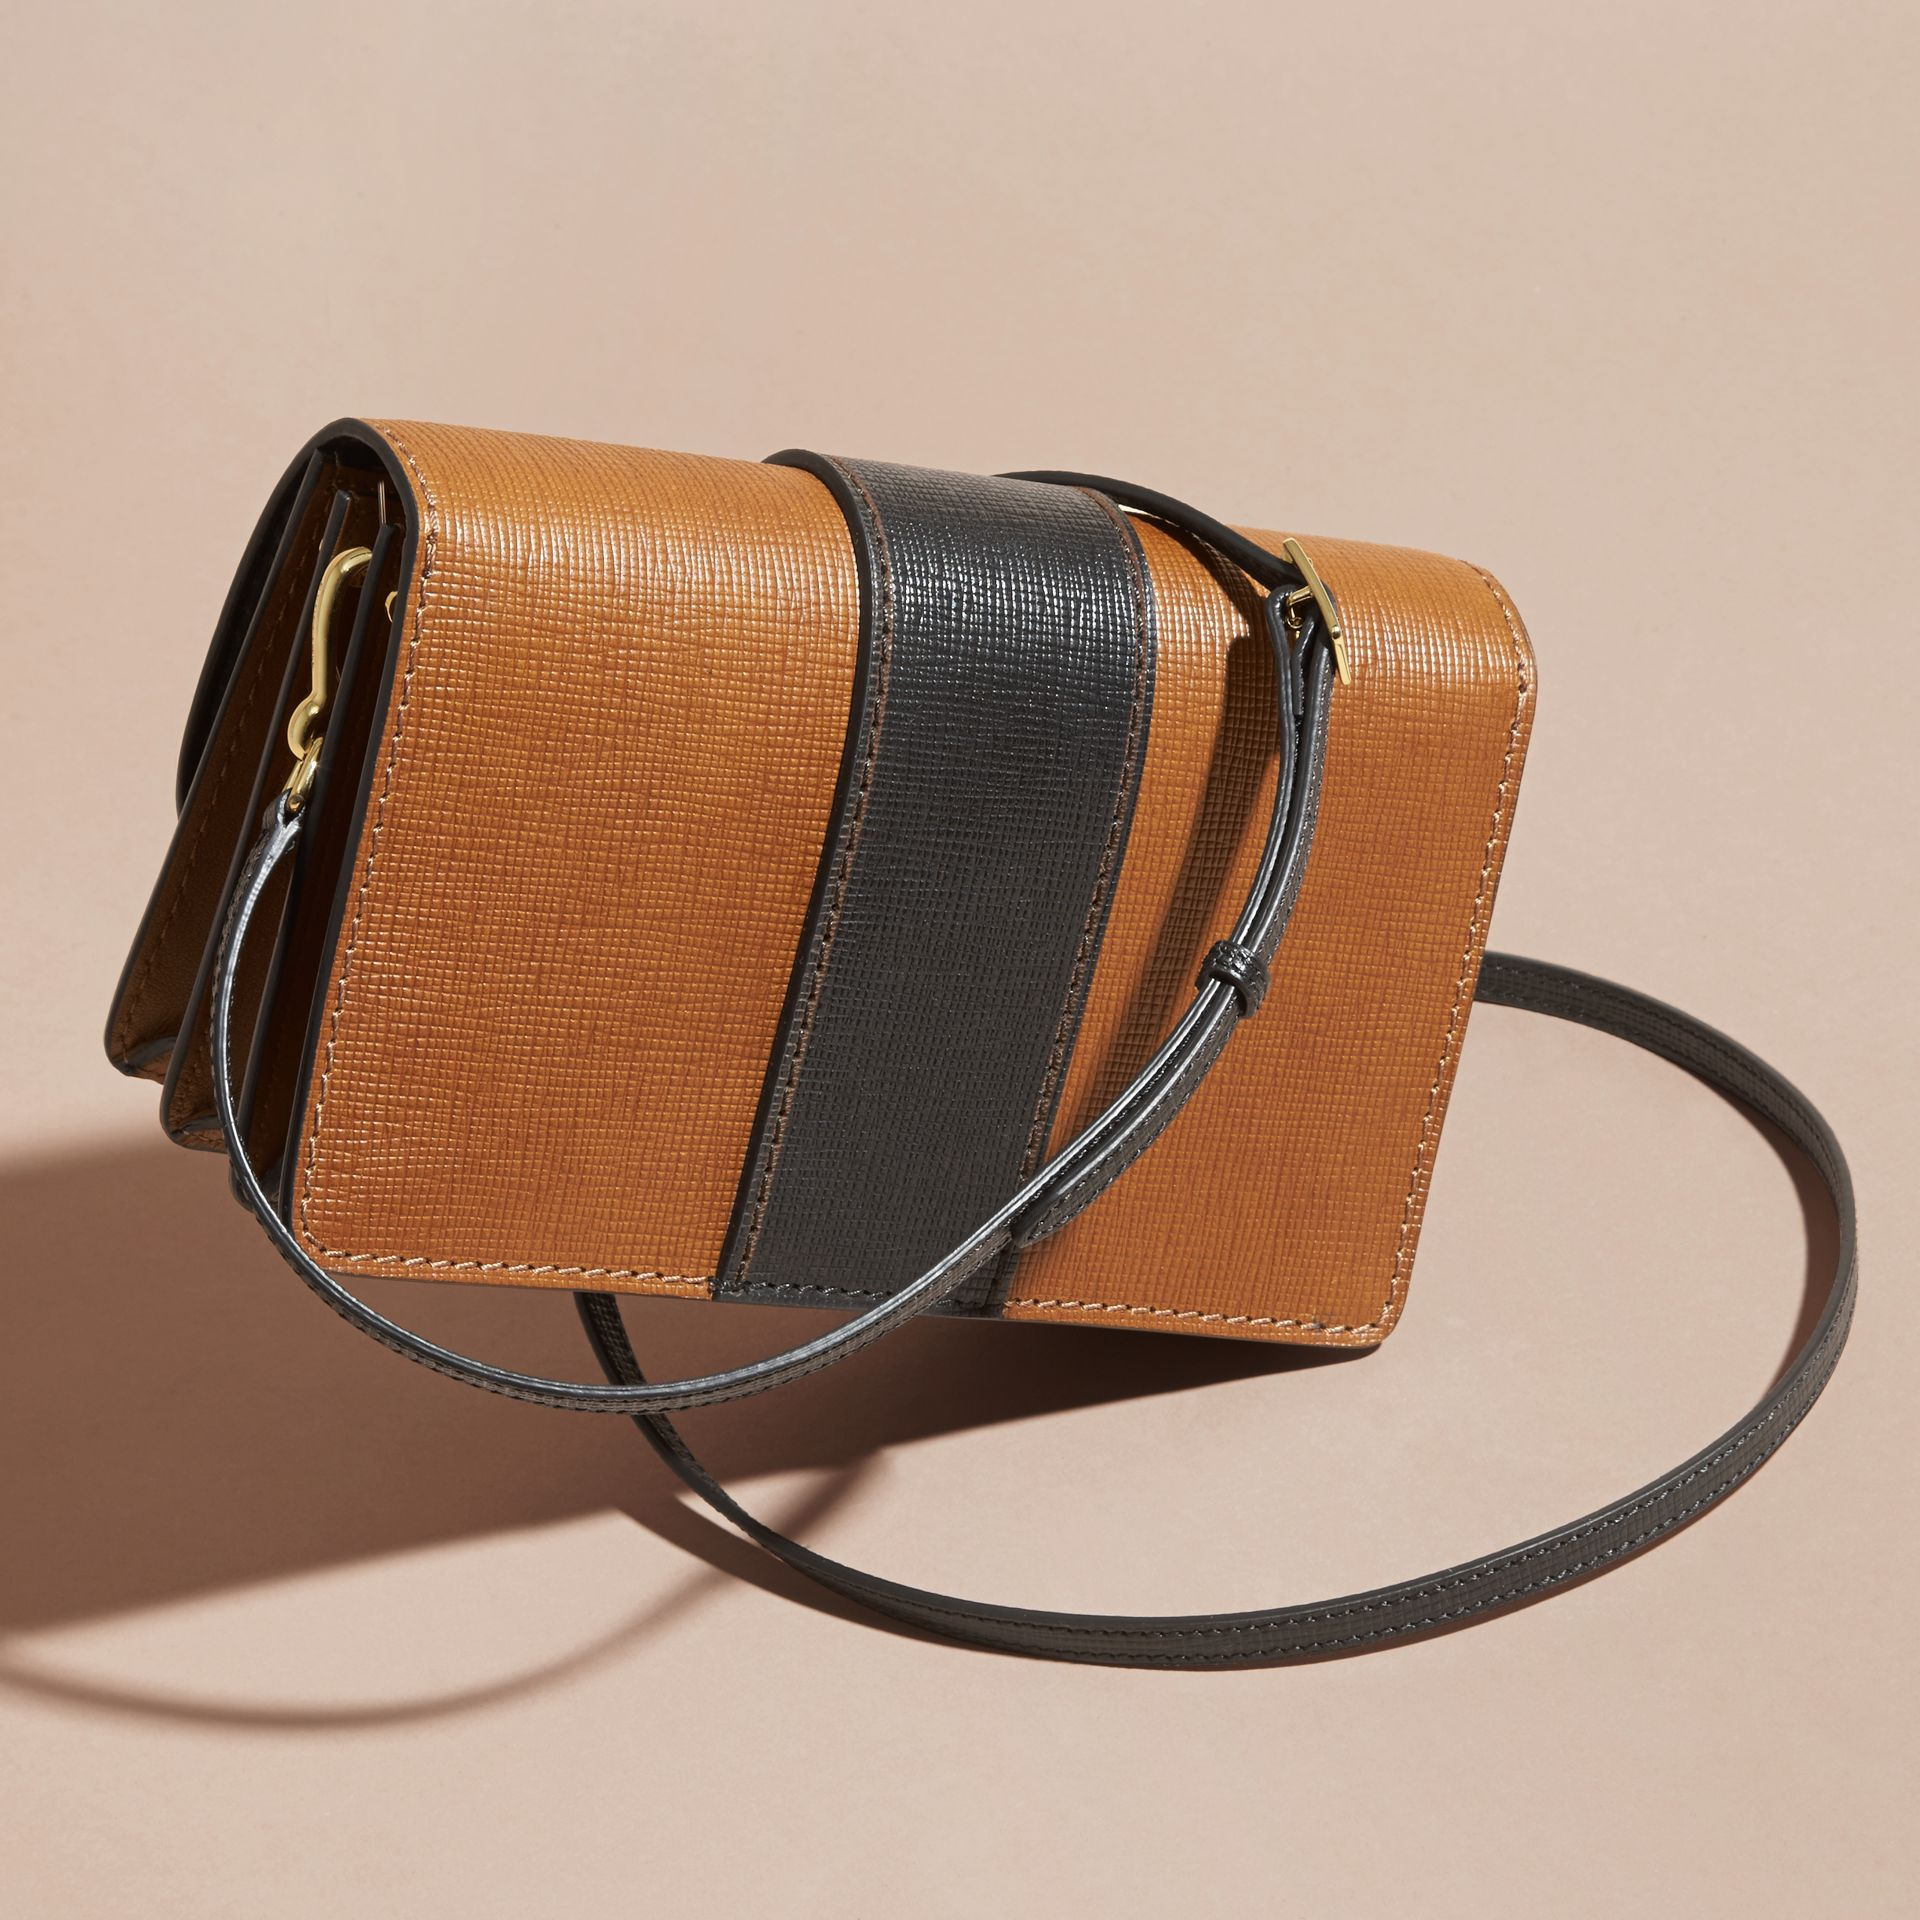 Tan/black The Medium Buckle Bag in Textured Leather Tan/black - gallery image 5